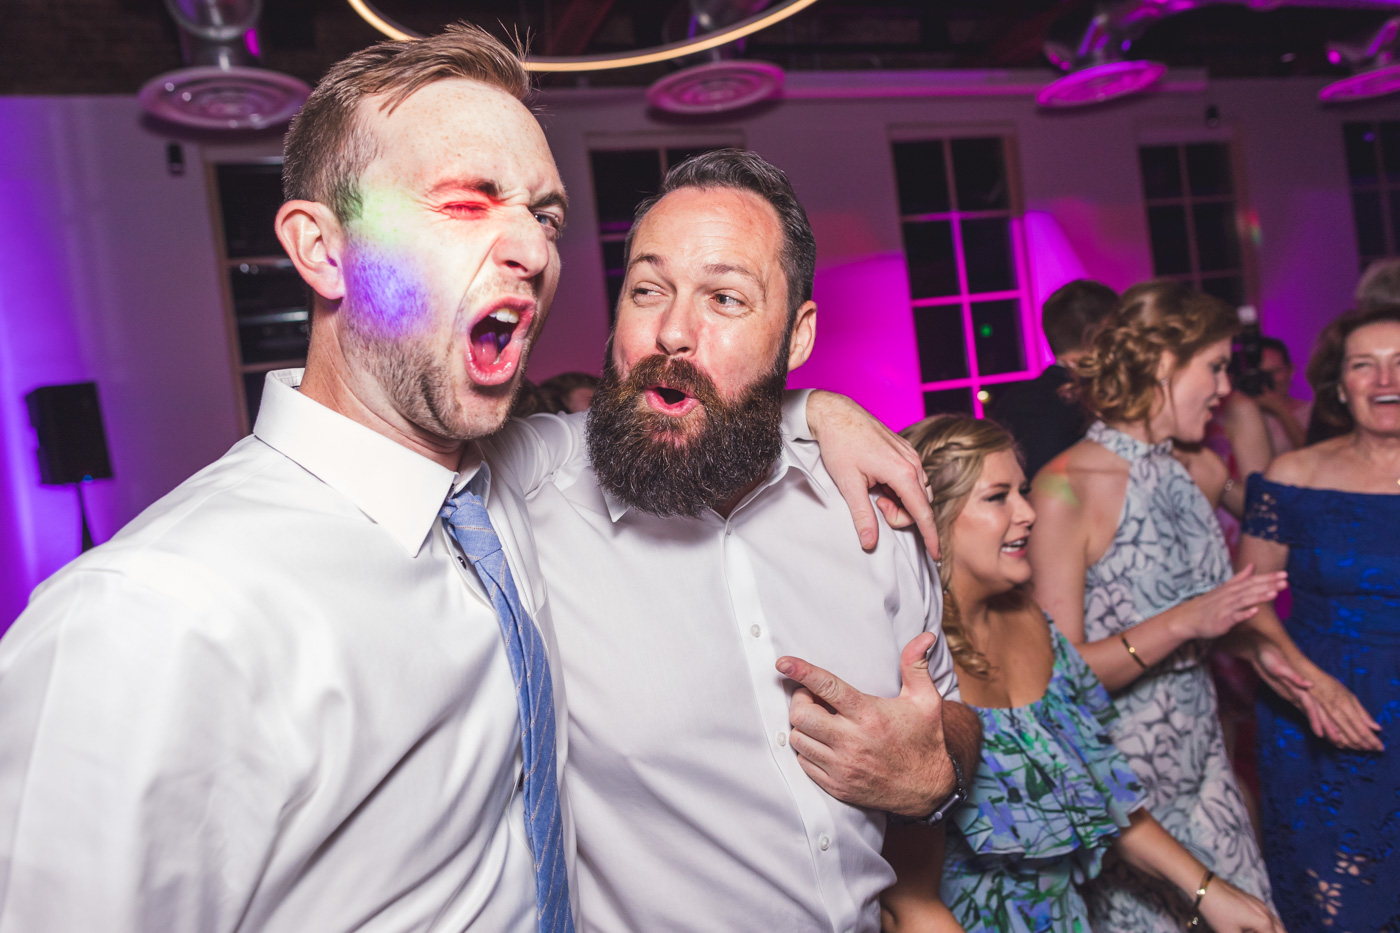 groomsmen-being-silly-at-reception